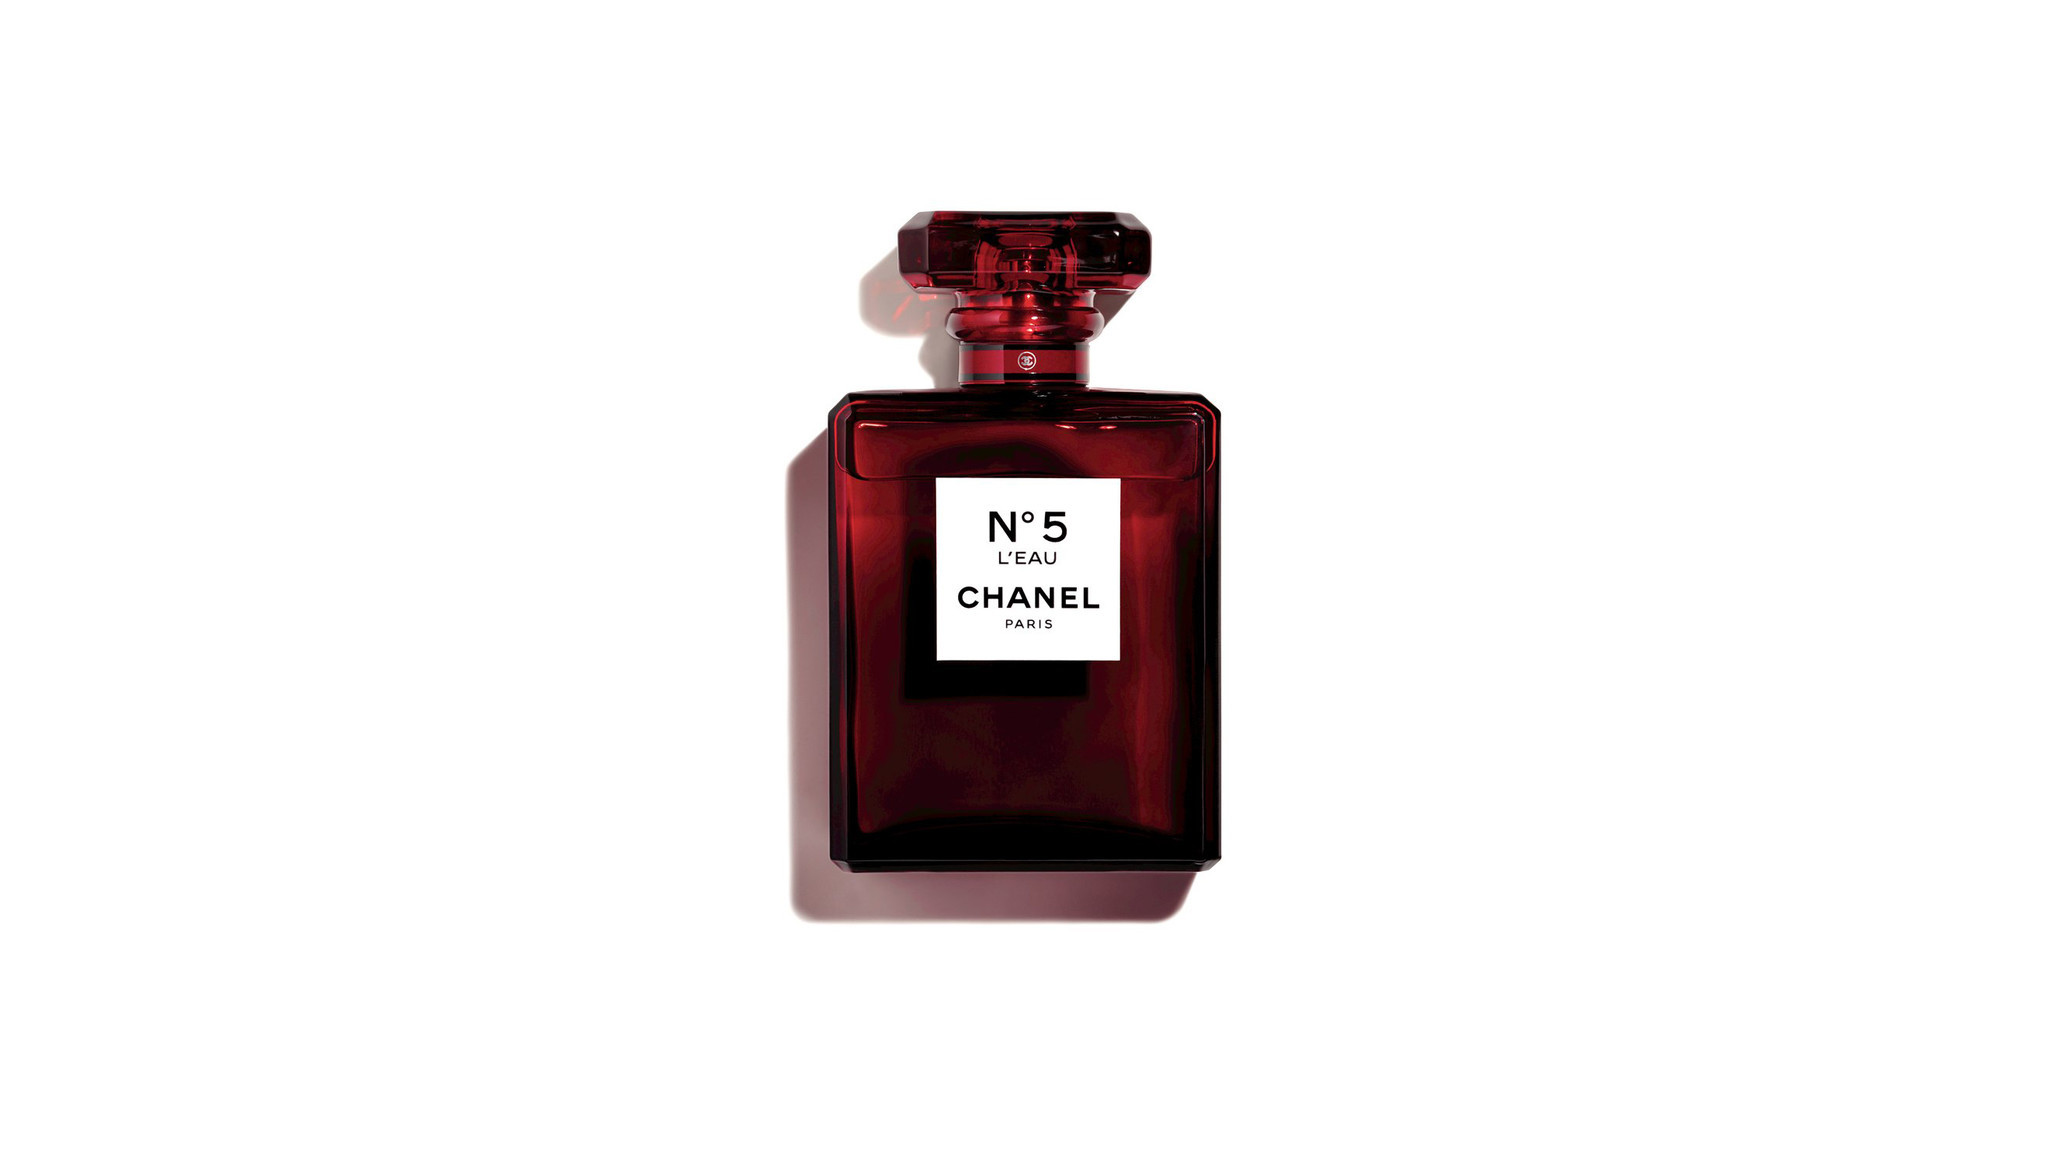 Chanel No.5 L?Eau eau de toilette with notes of rose, jasmine, ylang-ylang, citrus and musk in a lim